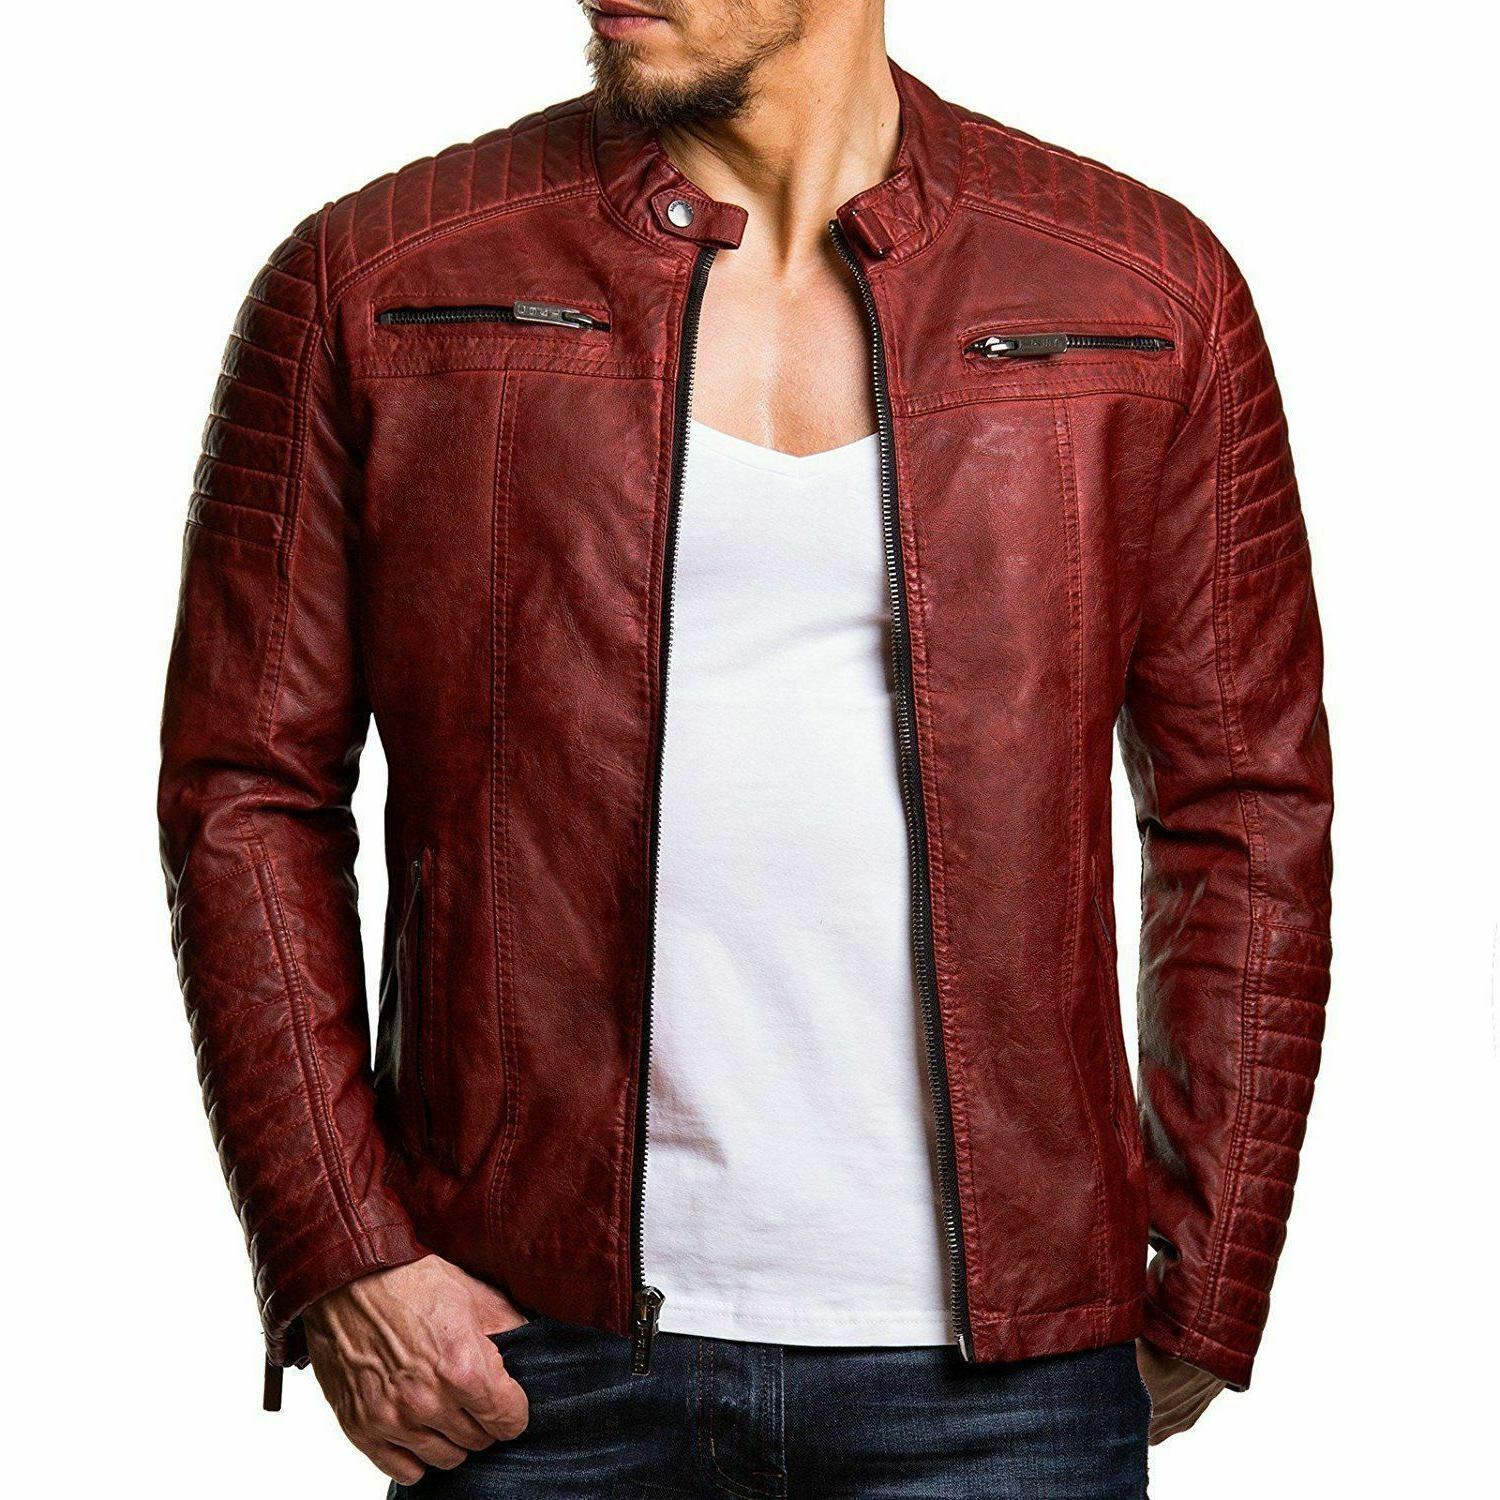 New Leather Coat Outwear Biker Jacket